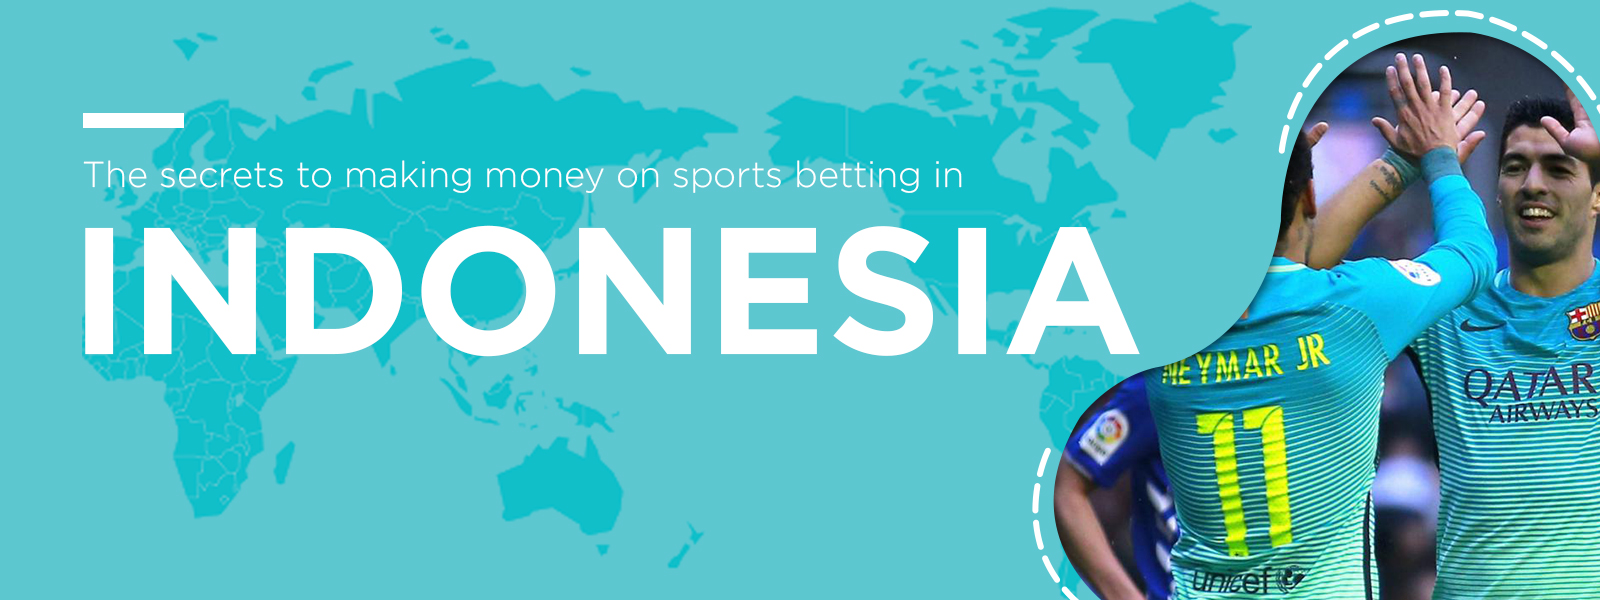 The Secrets To Making Money On Sports Betting In Indonesia